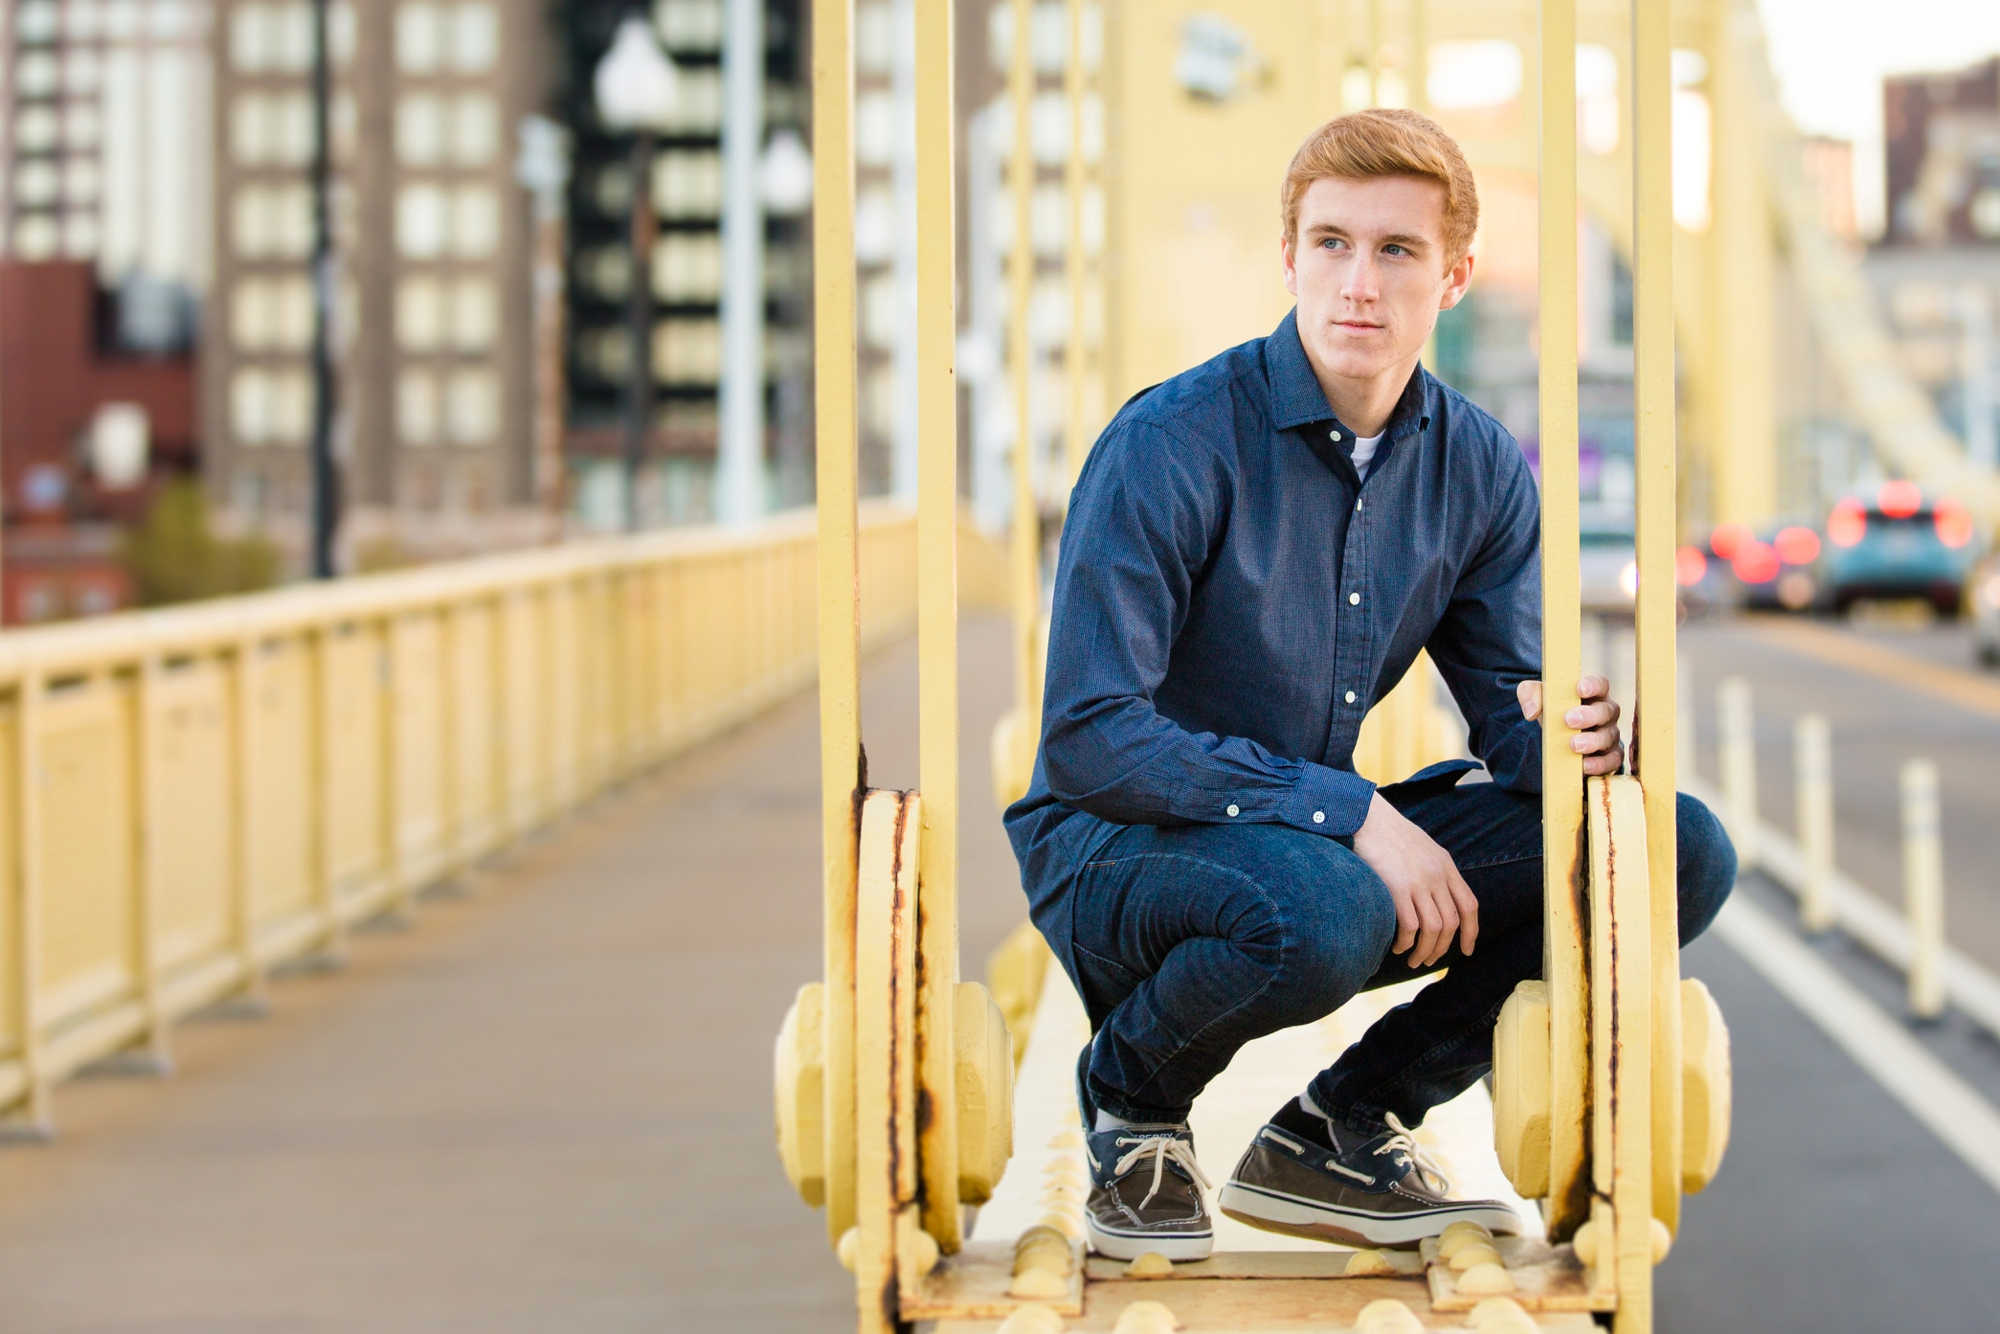 best places to take senior pictures in pittsburgh, places to take senior pictures in pittsburgh, north shore downtown pittsburgh senior photos, pittsburgh senior photographer